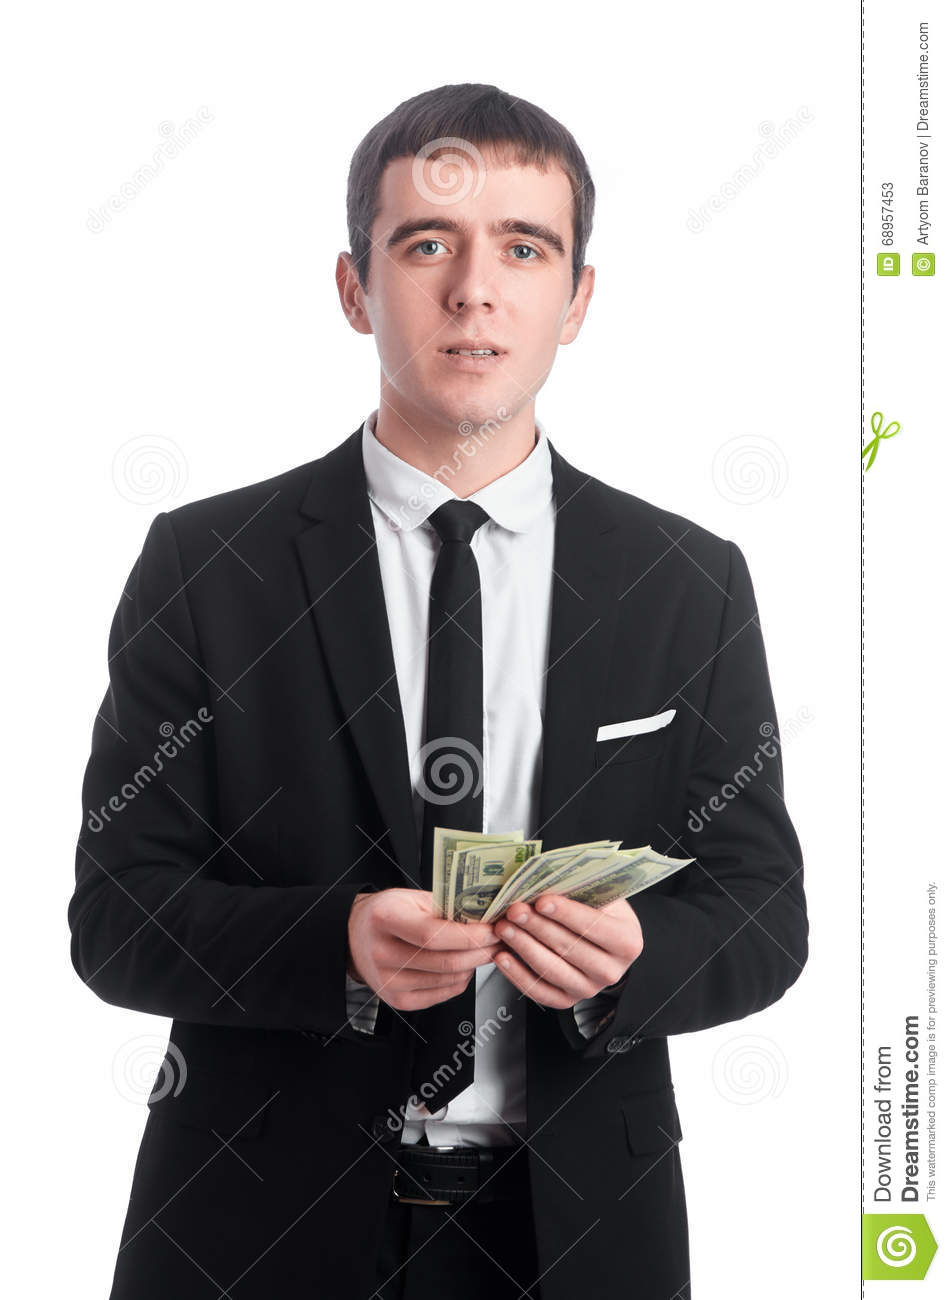 Man in suit counting the money